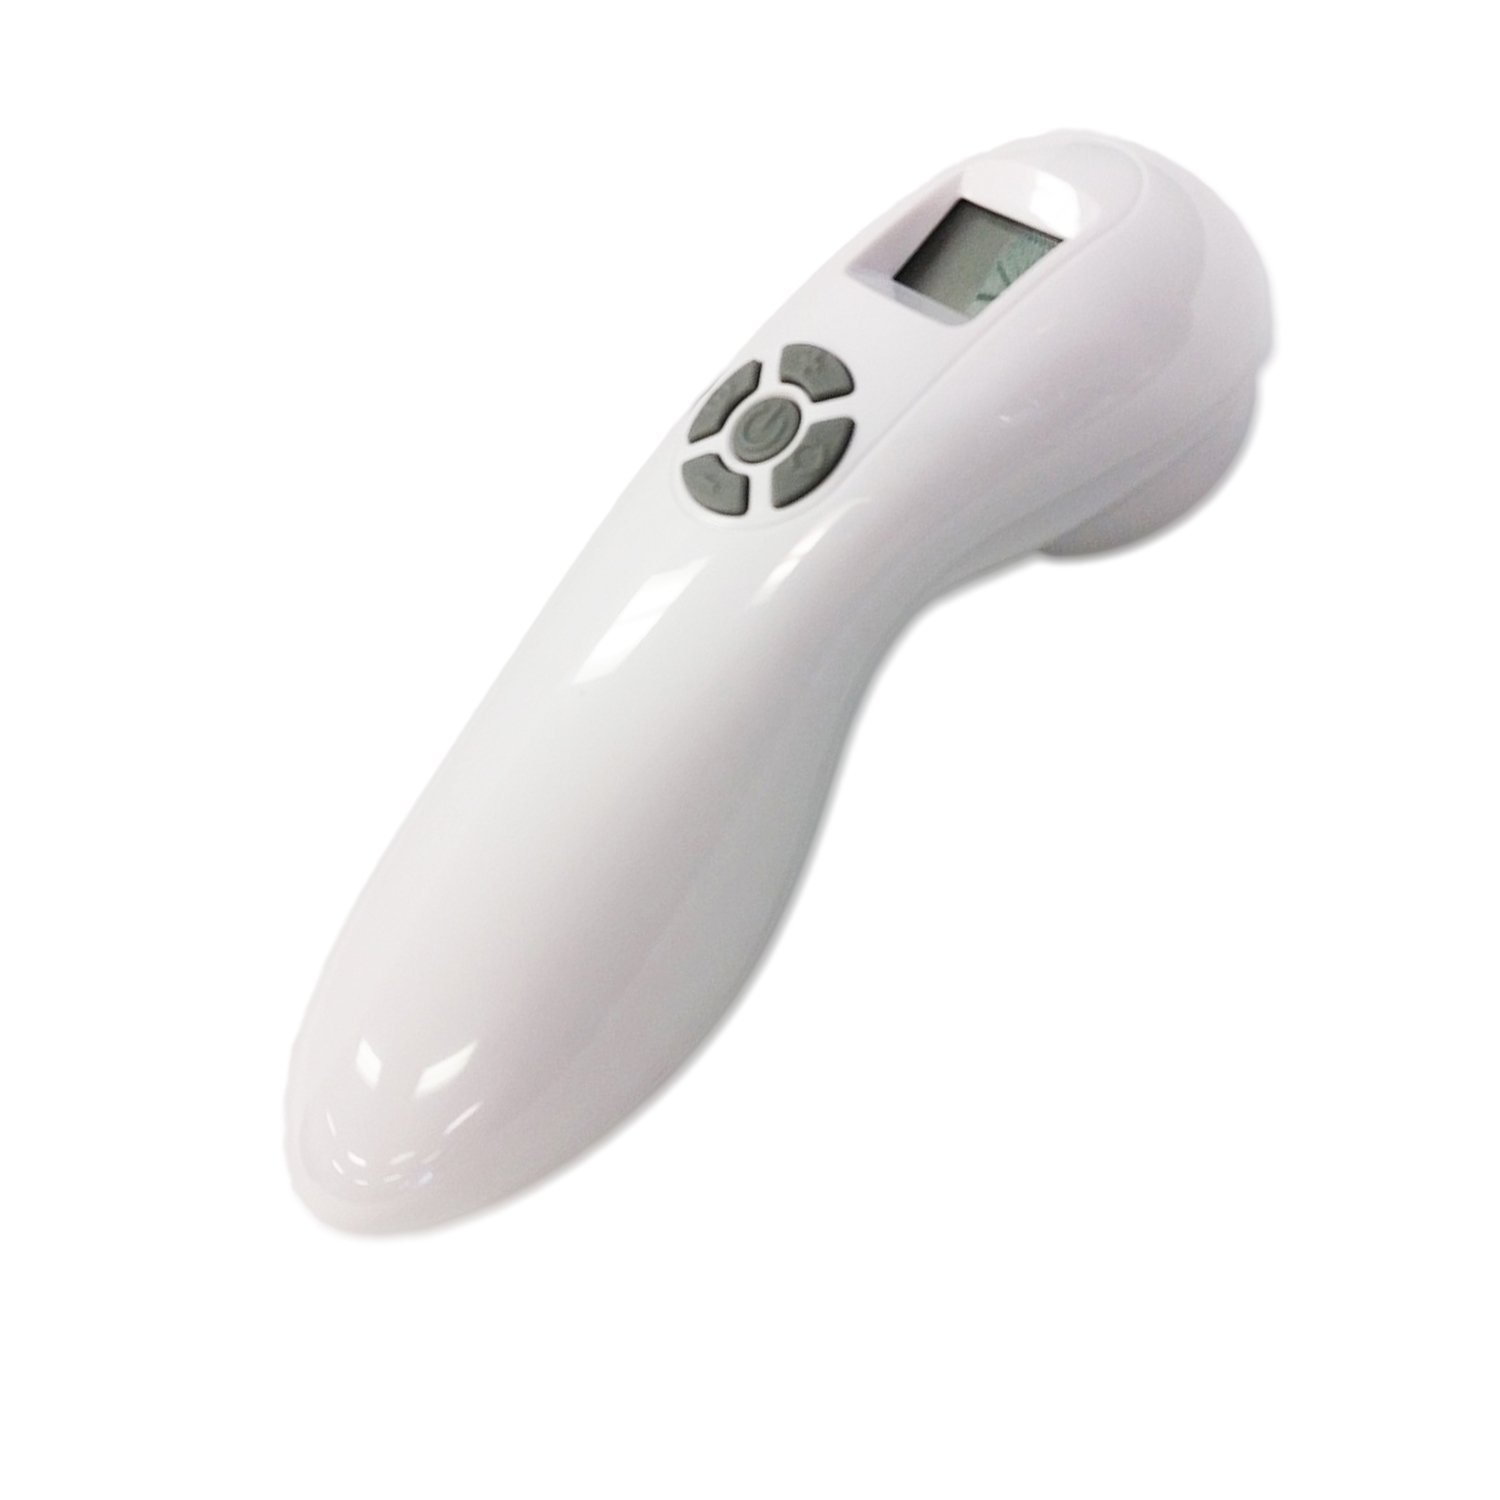 Pain Relief Cold Laser Therapy Unit + 2 FREE Gifts + FREE FedEx Shipping by YJTSKY (Image #1)